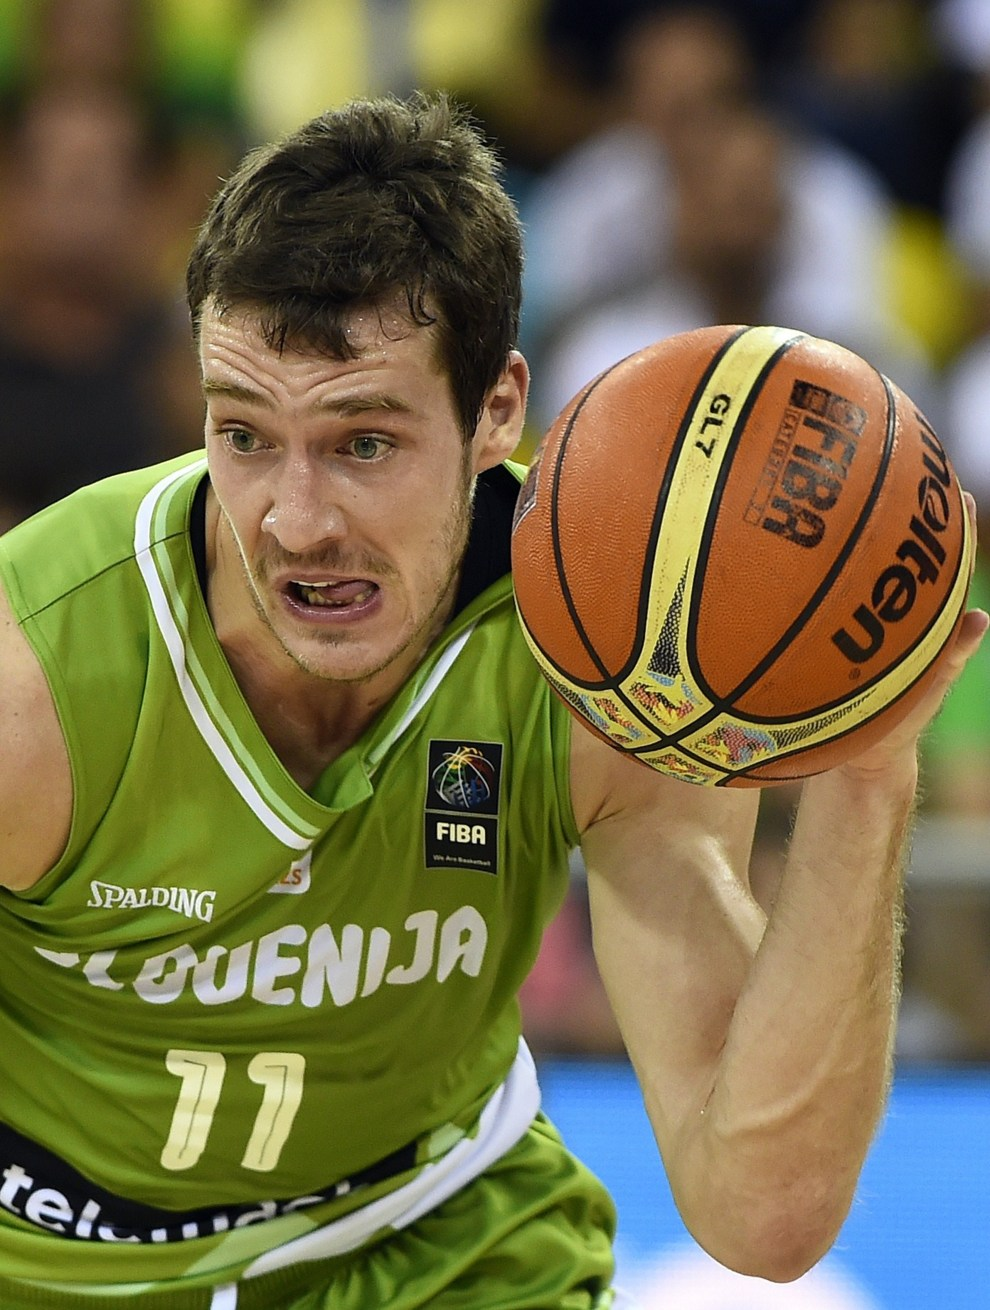 61 - Goran Dragic (Heat)